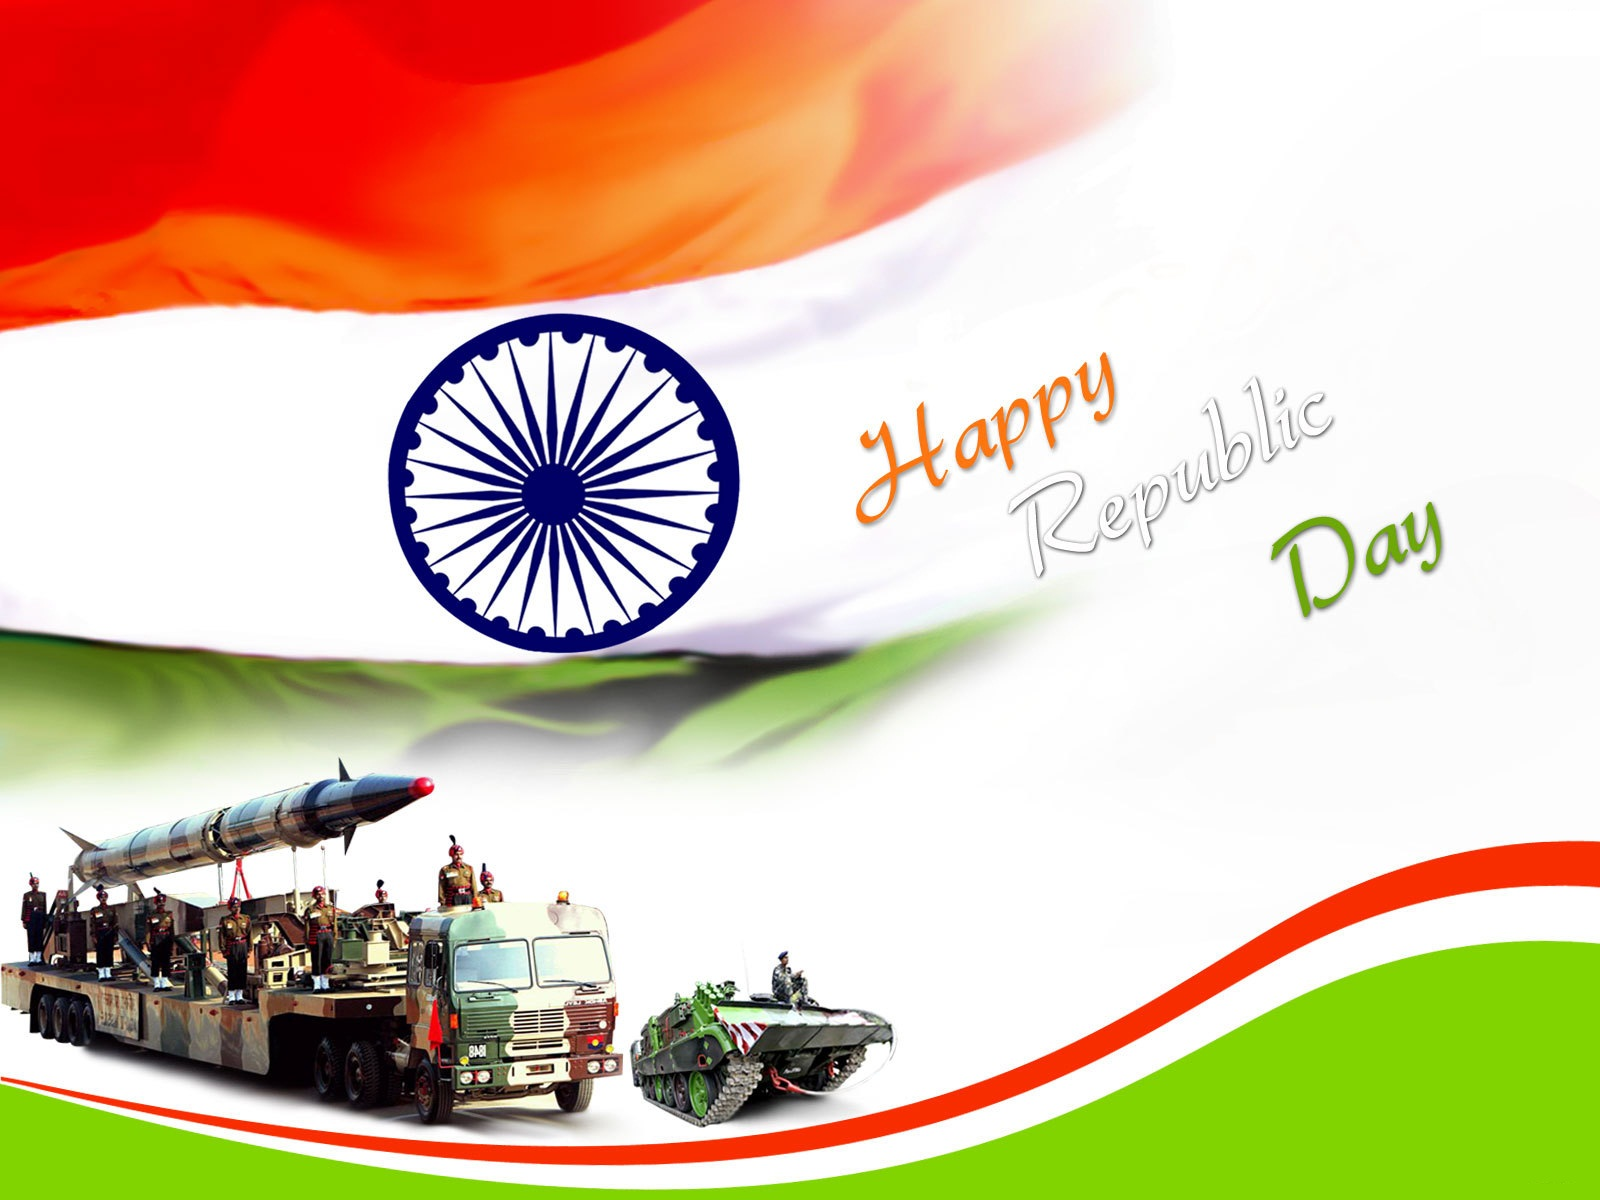 Wallpaper download india - Indian Republic Day Wallpapers Hd Images Free Download